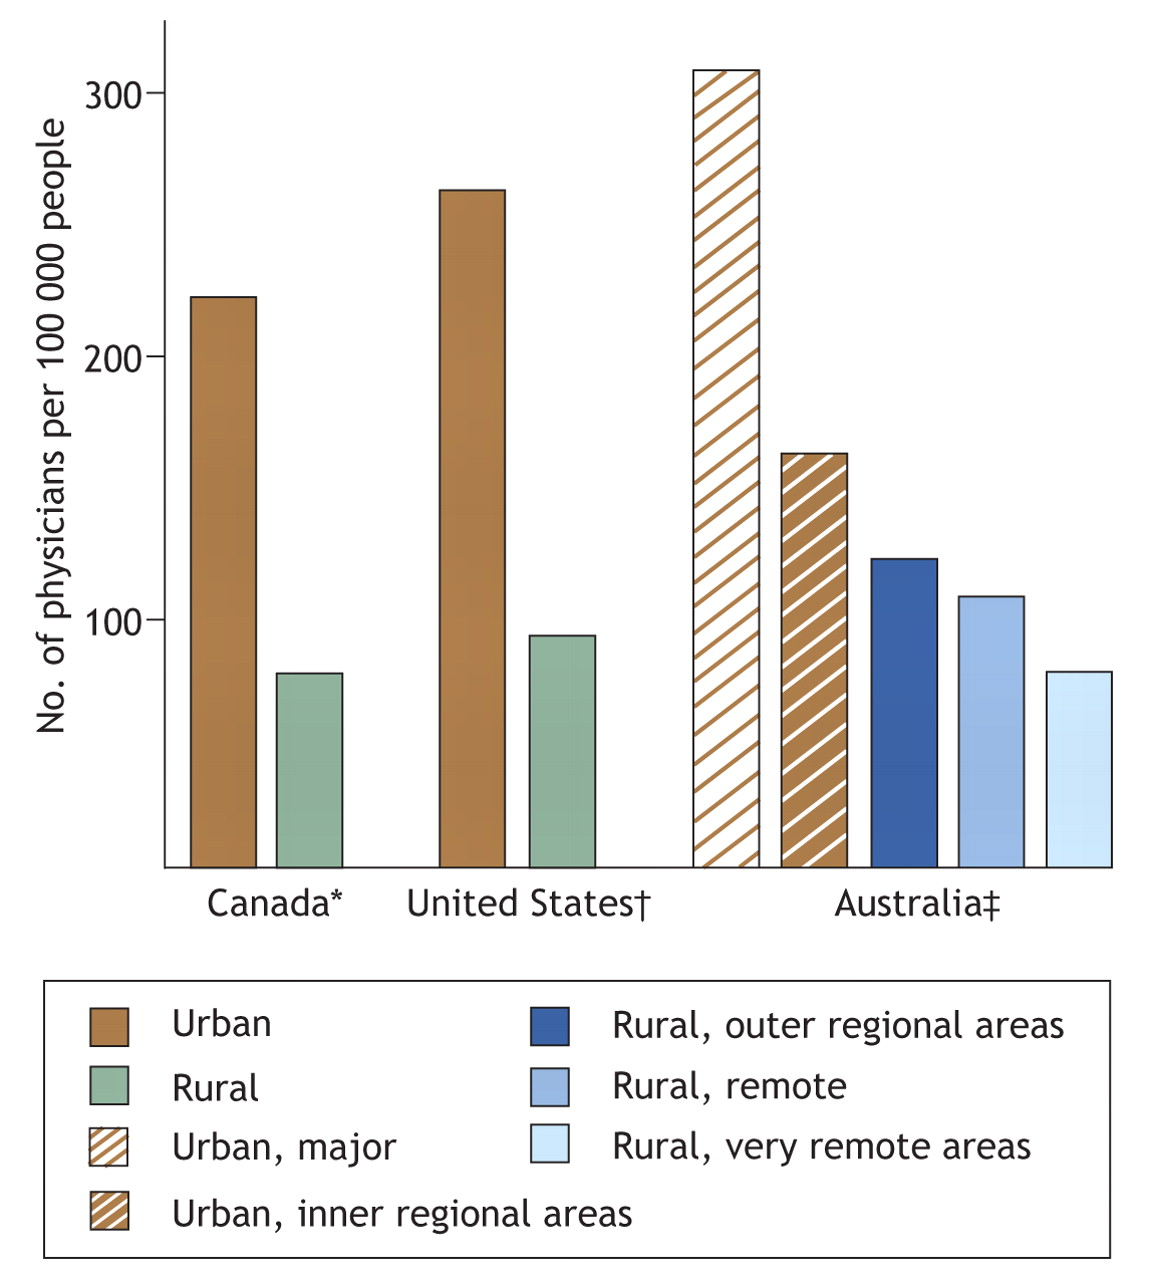 Increasing The Number Of Rural Physicians